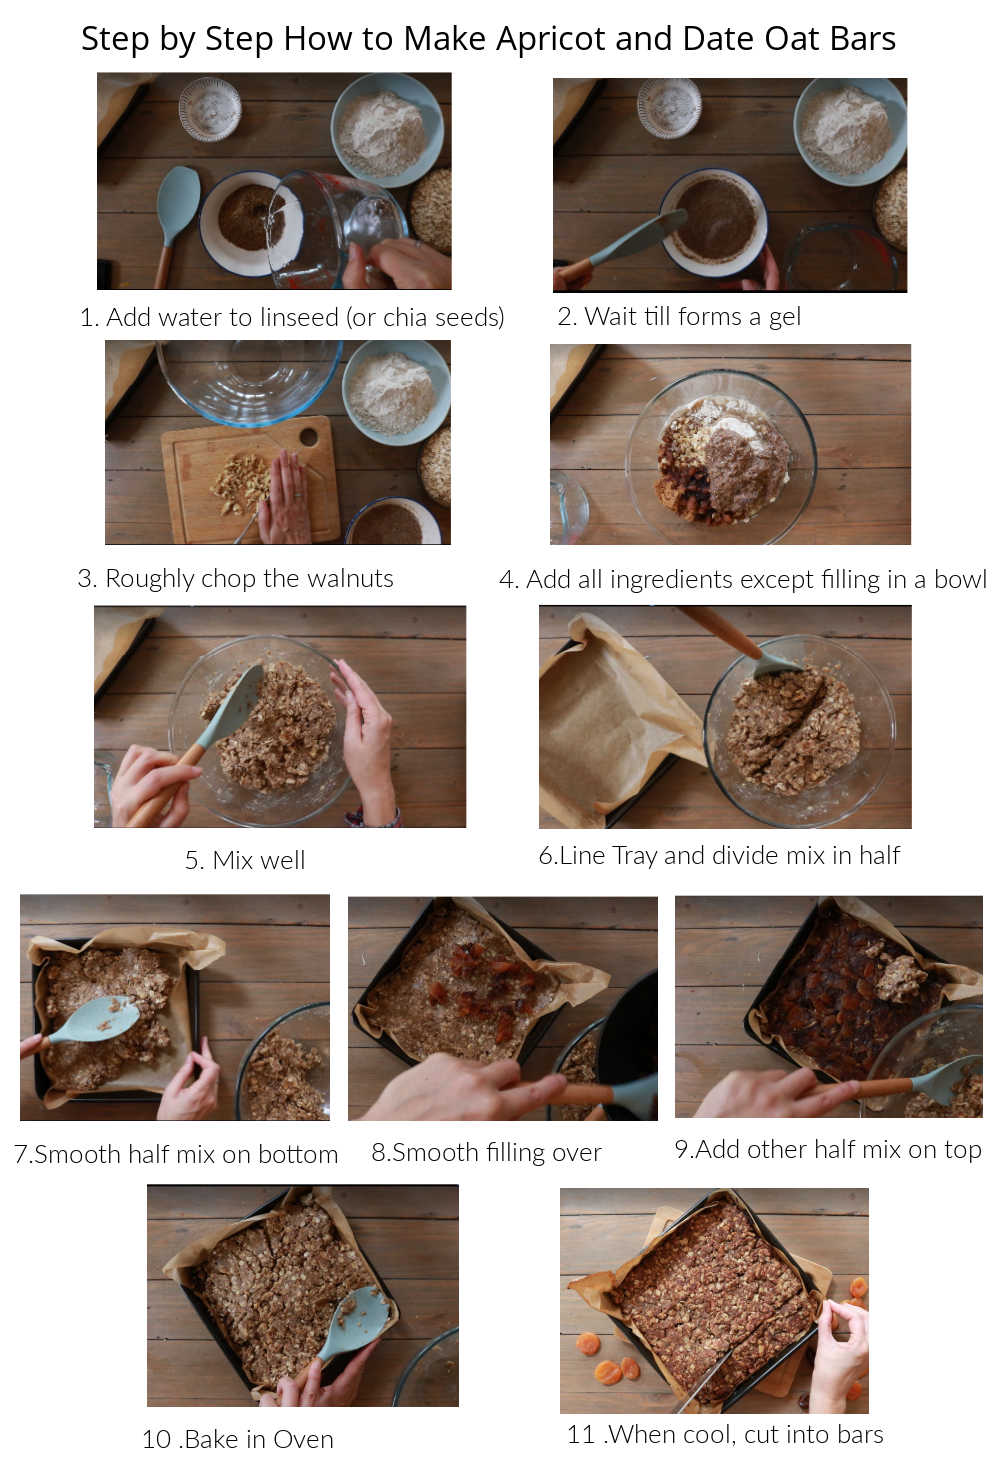 Step by step to make apricot, date and walnut bars